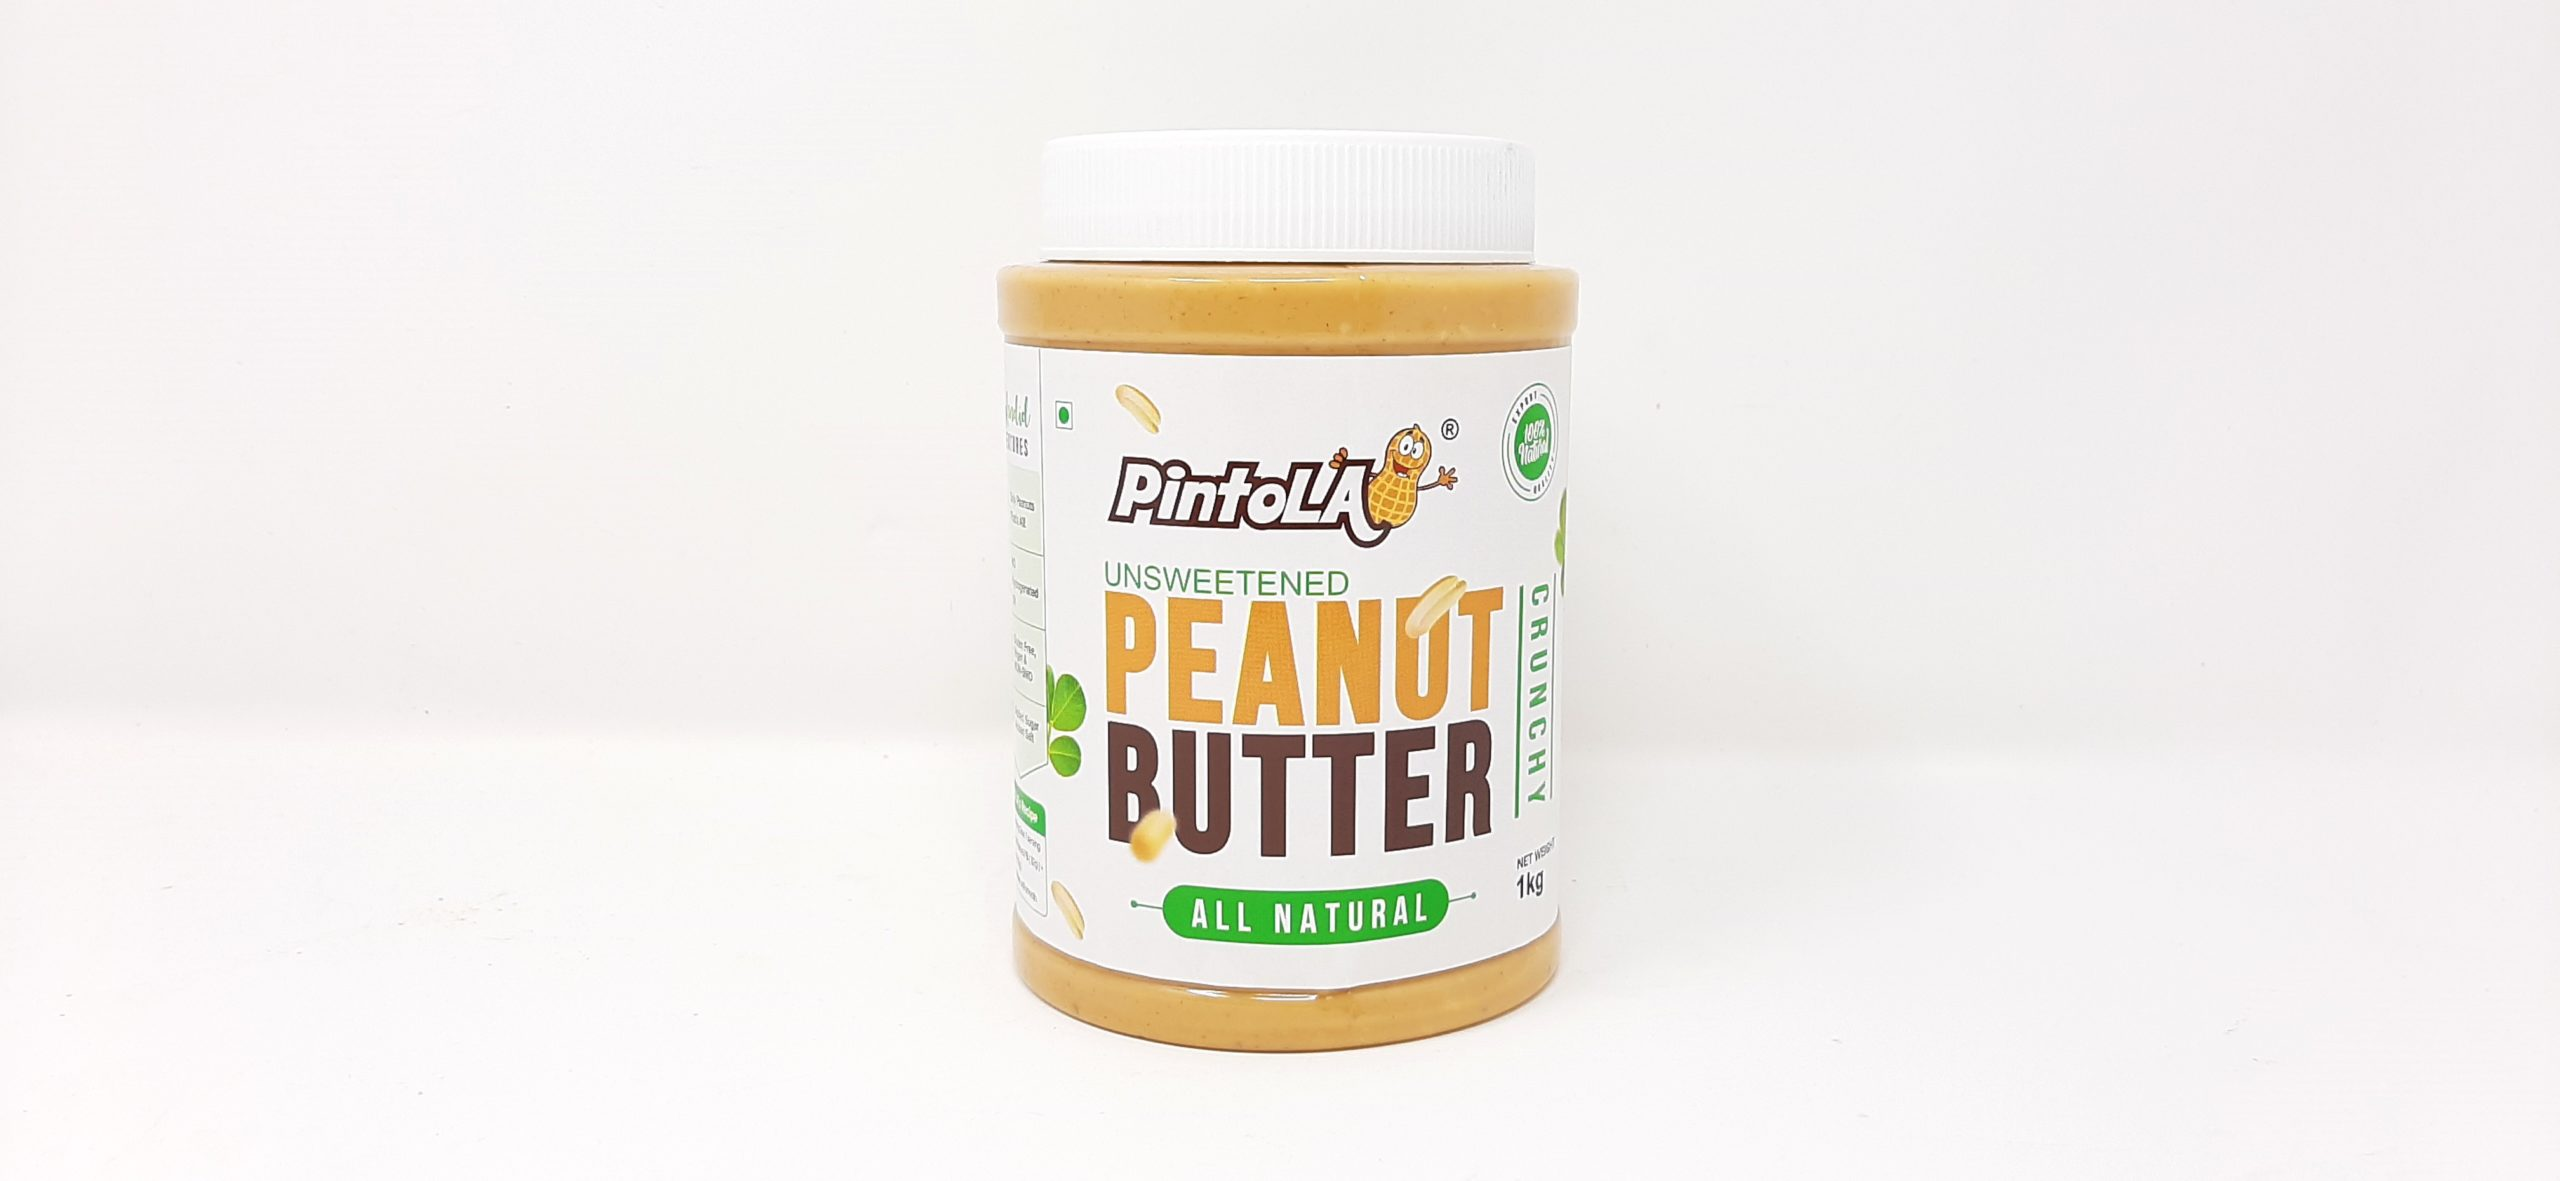 Pintola unsweetened Peanut butter- All natural